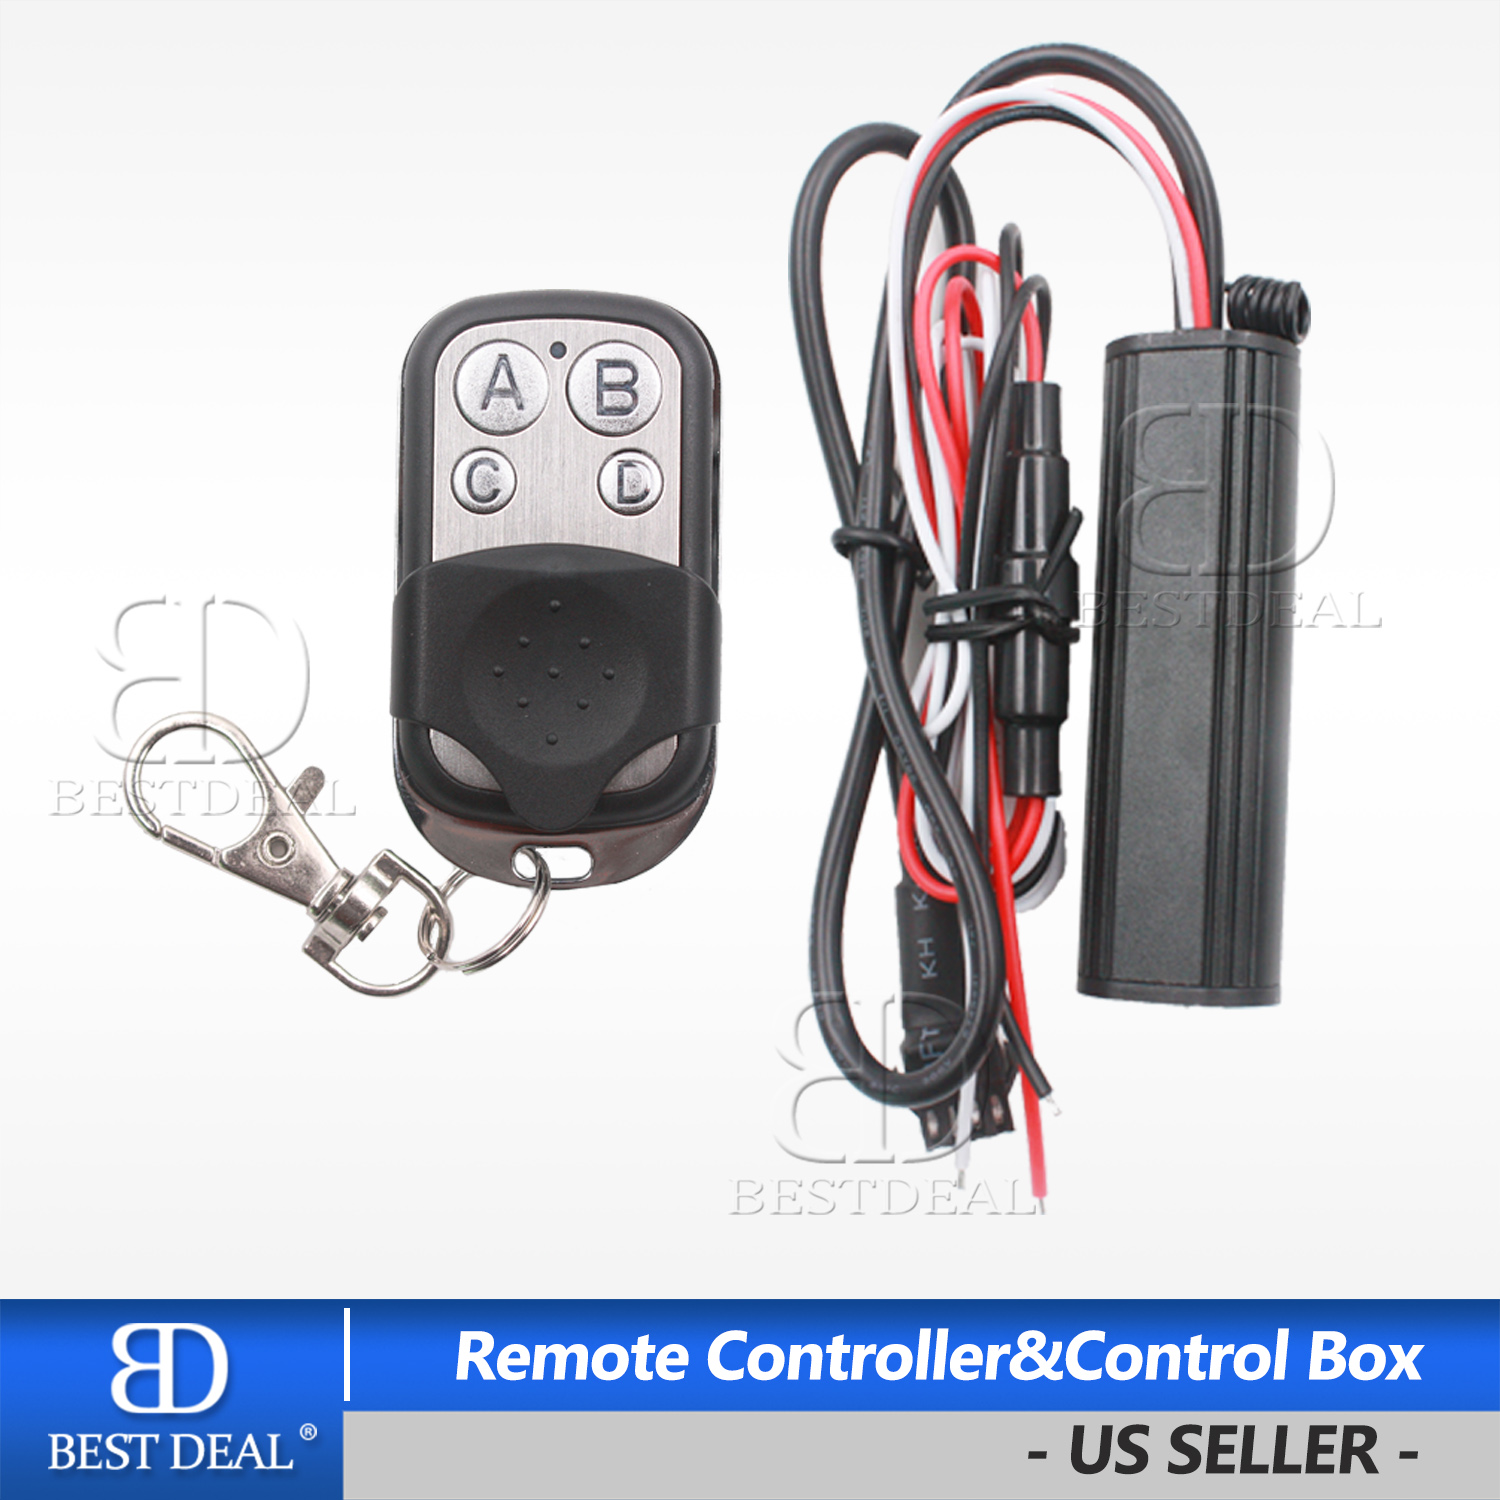 Controller Box Remote Control KIT For Motorcycle RGB Pods//LED Neon Strip Lights